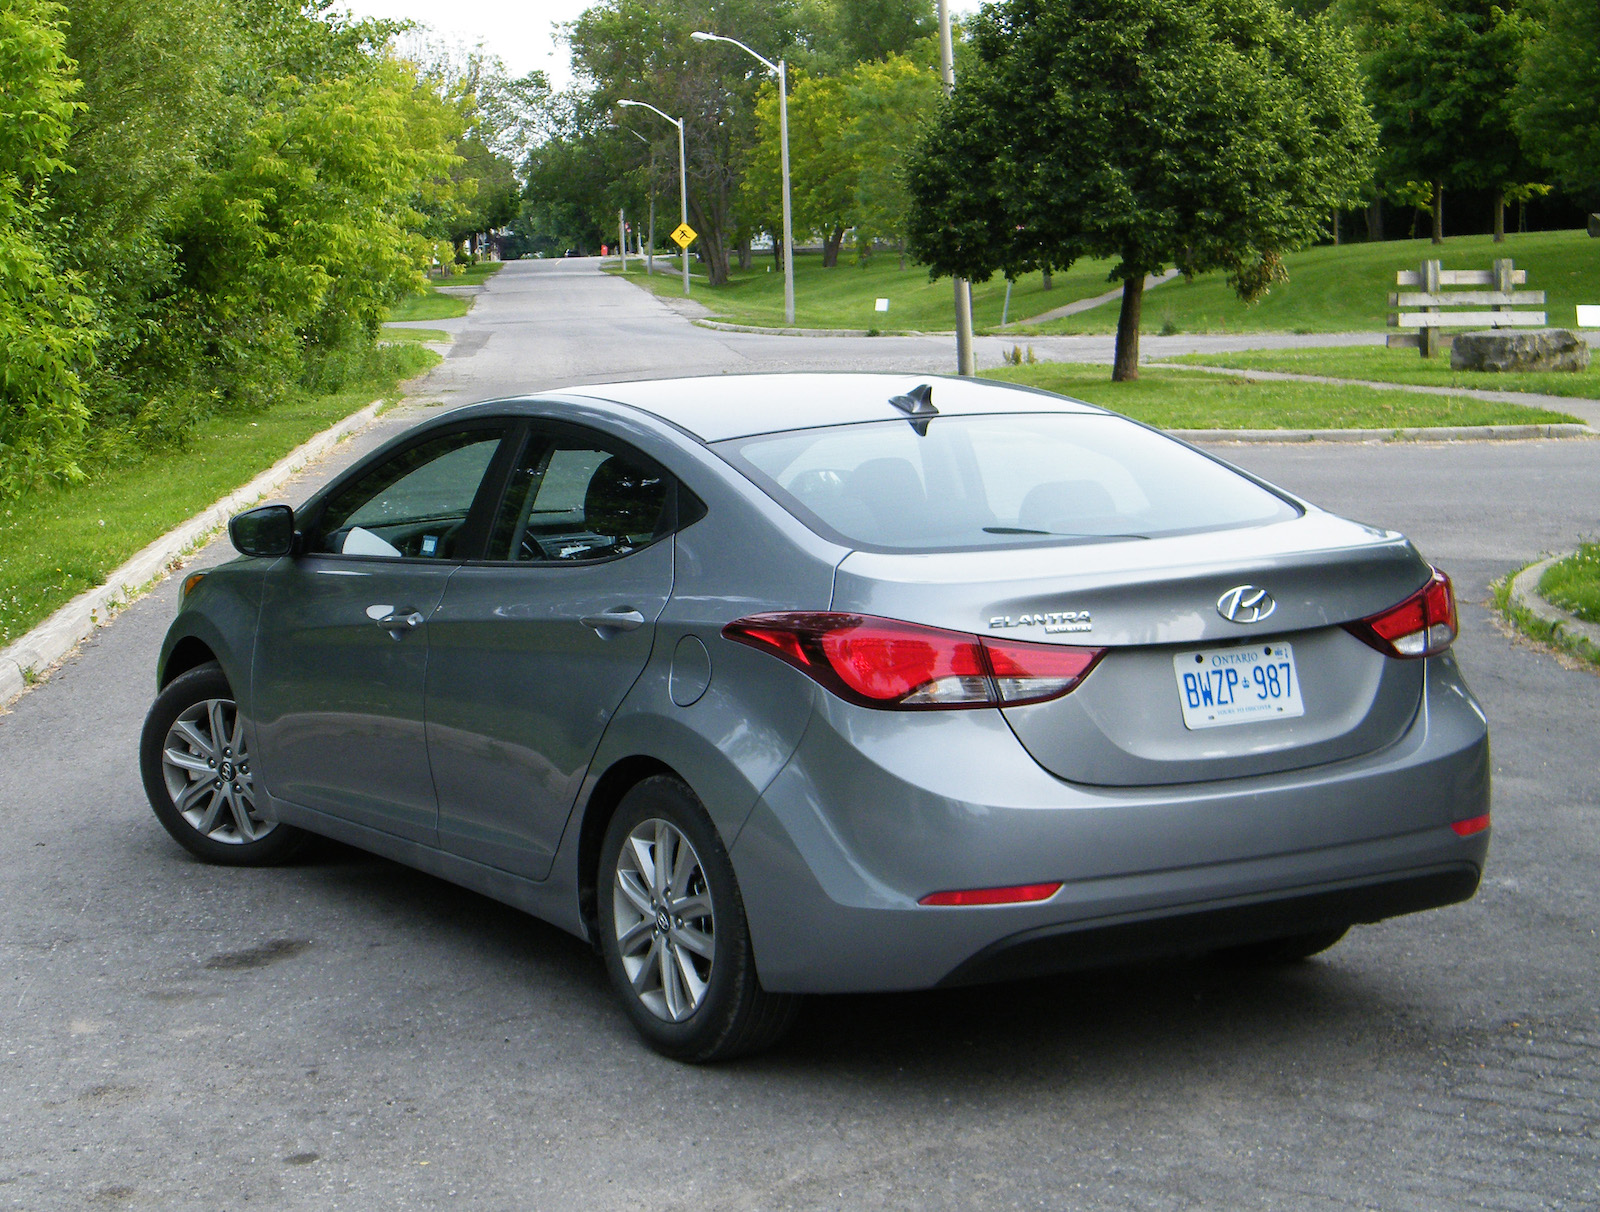 New Hyundai Elantra 2016 Free Download Image About All Car